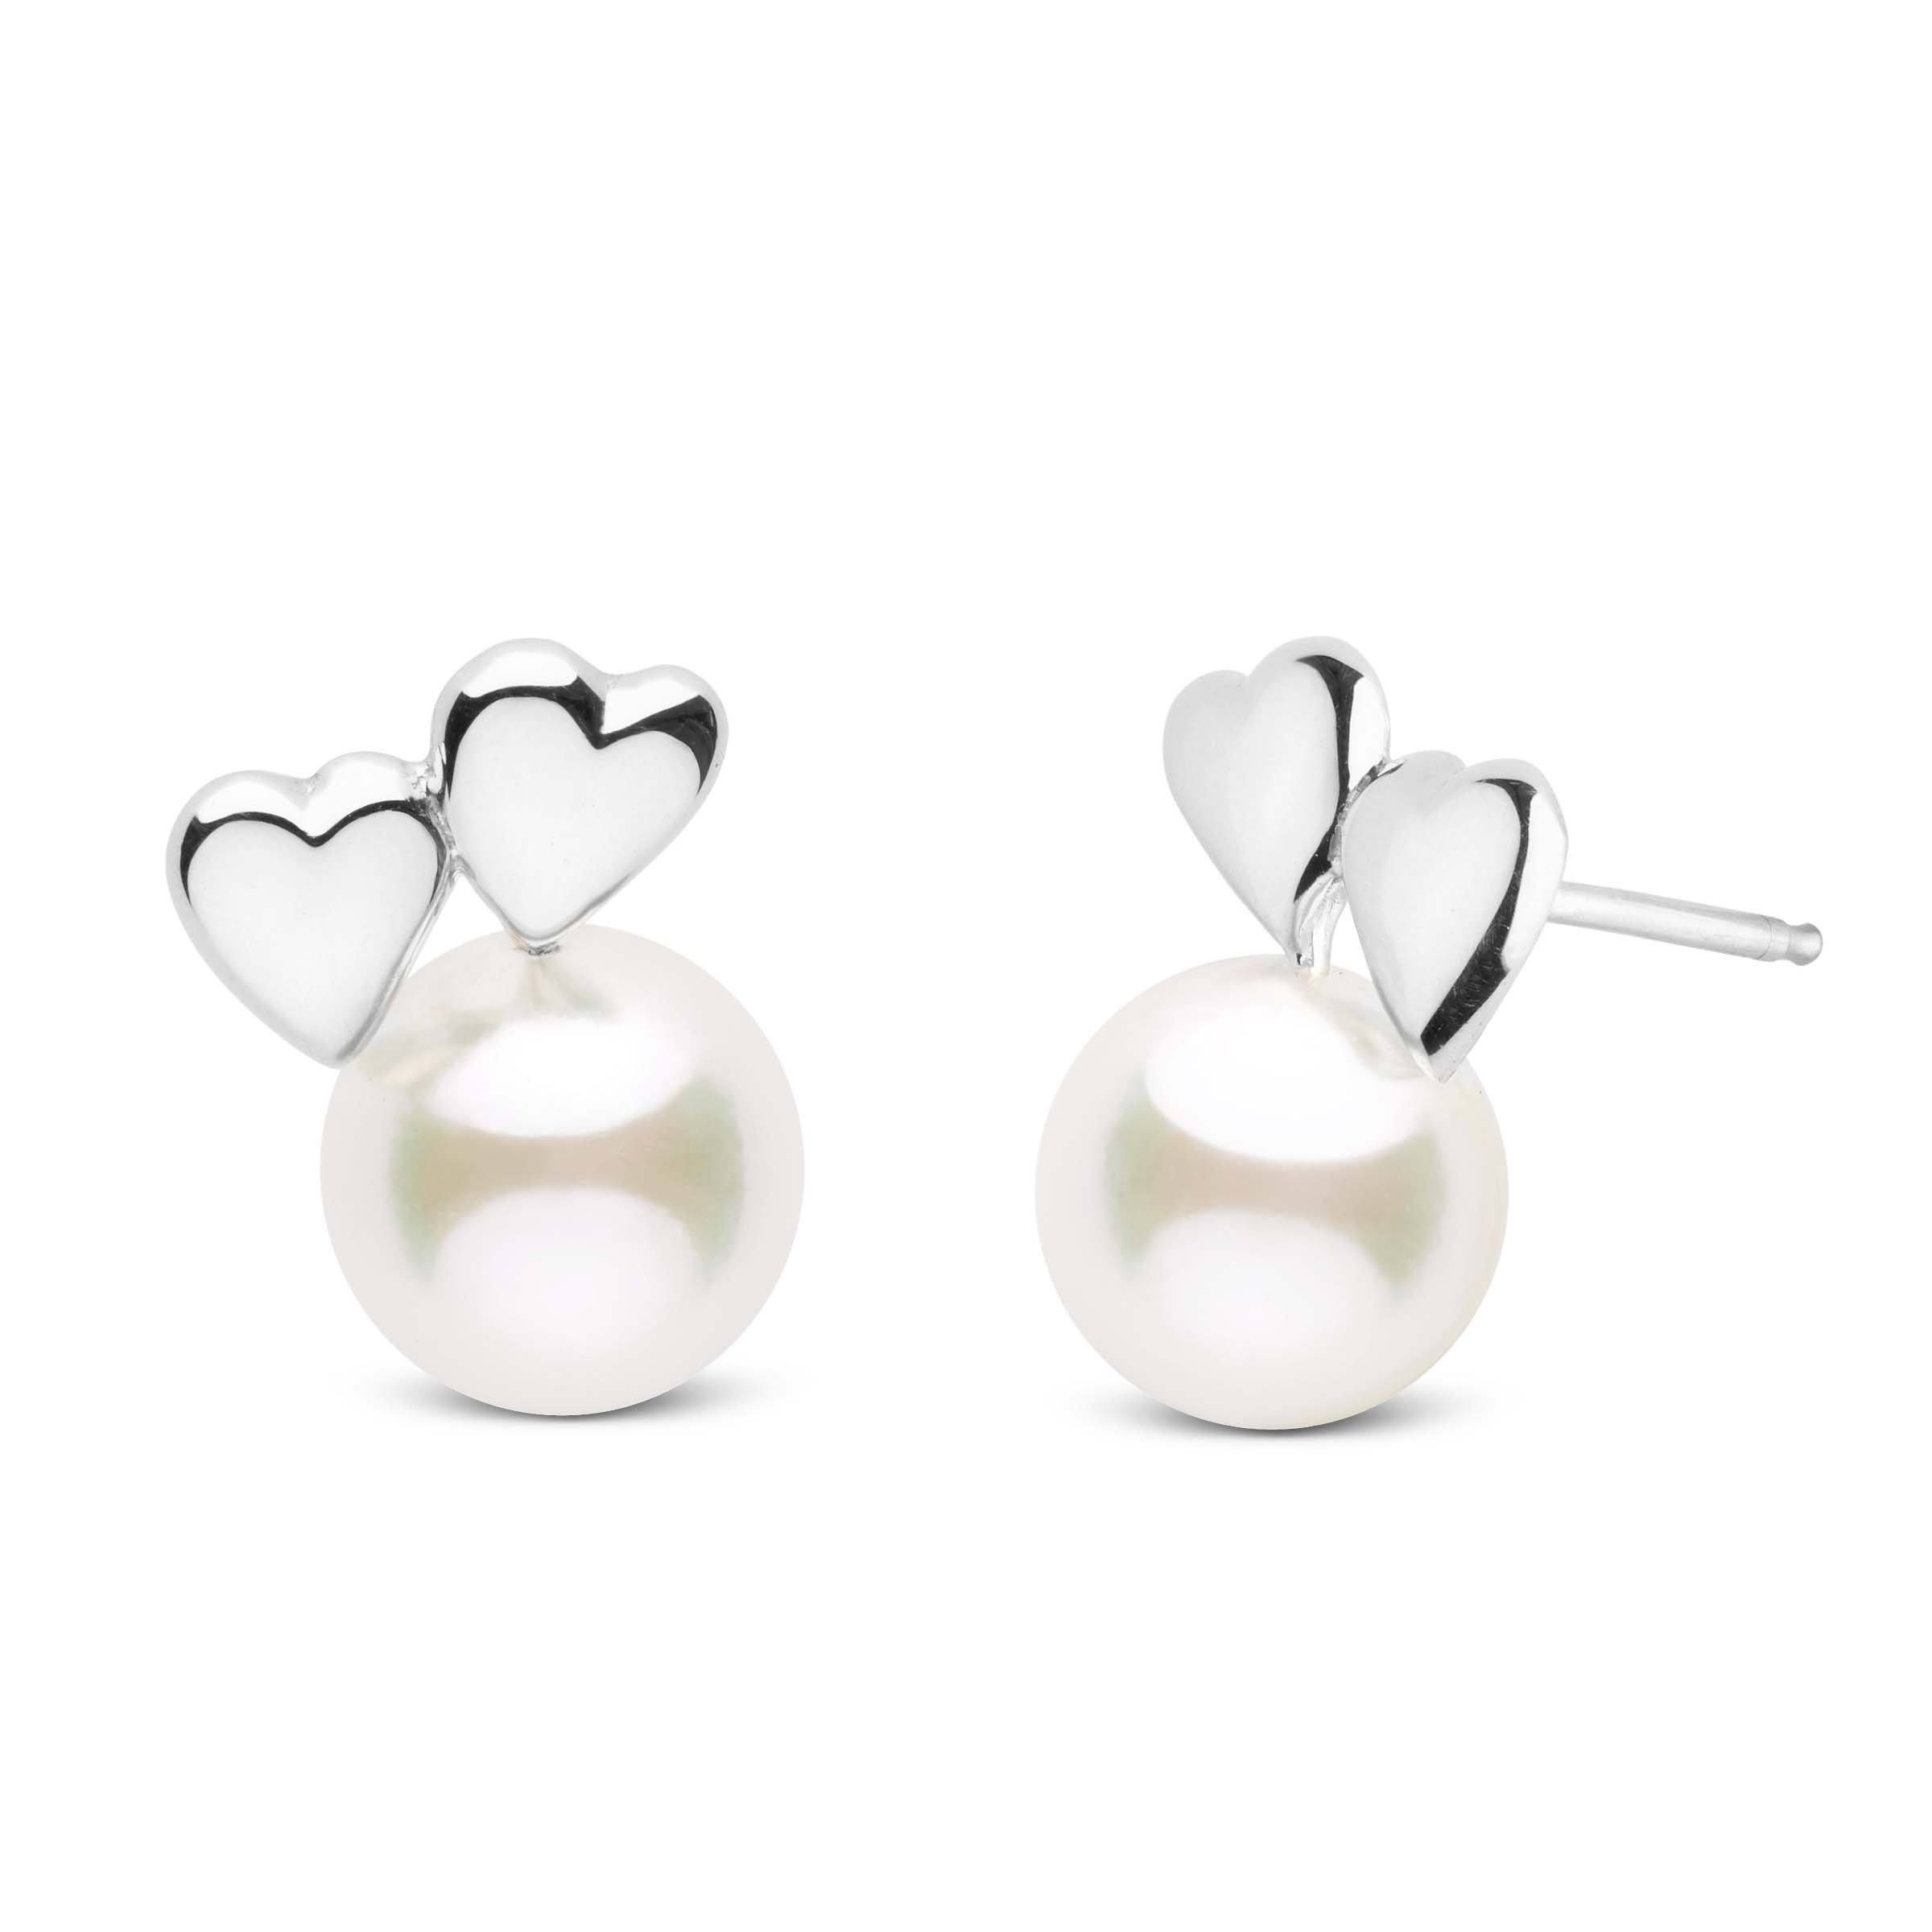 Heart to Heart Collection White Akoya Pearl 7.0-7.5 mm Earrings